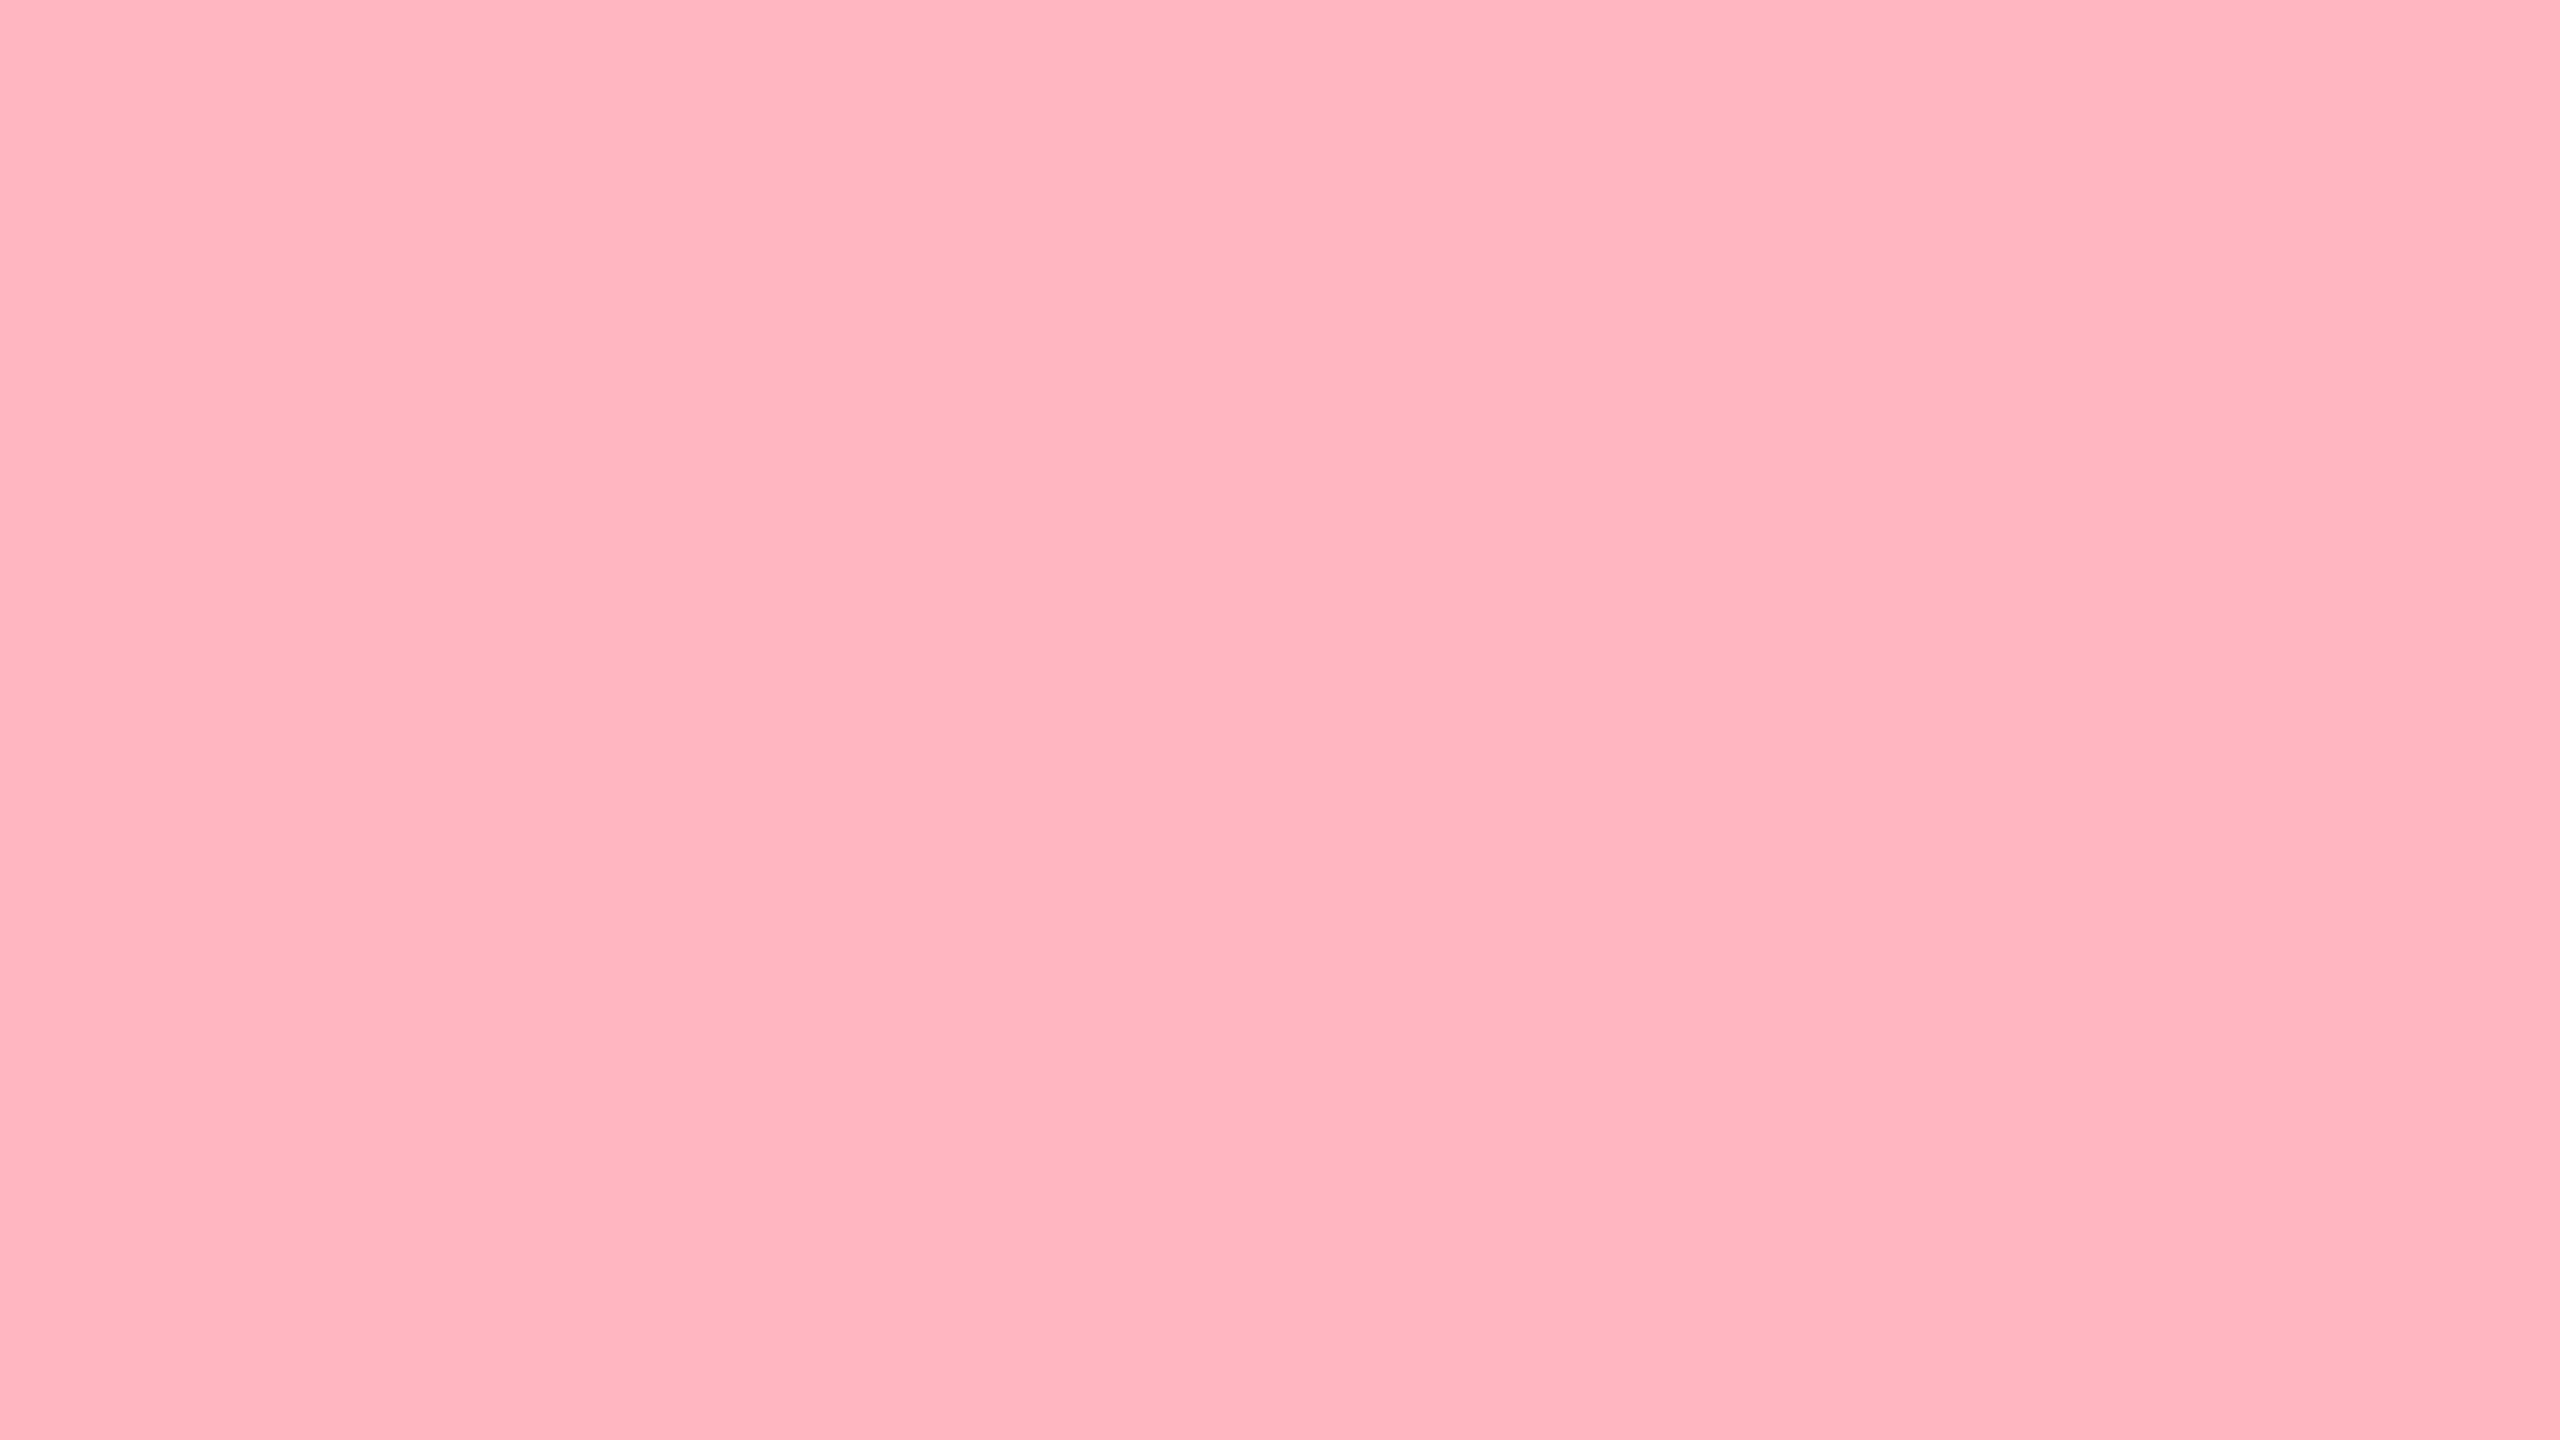 Pink solid color background view and download the below background 2560x1440